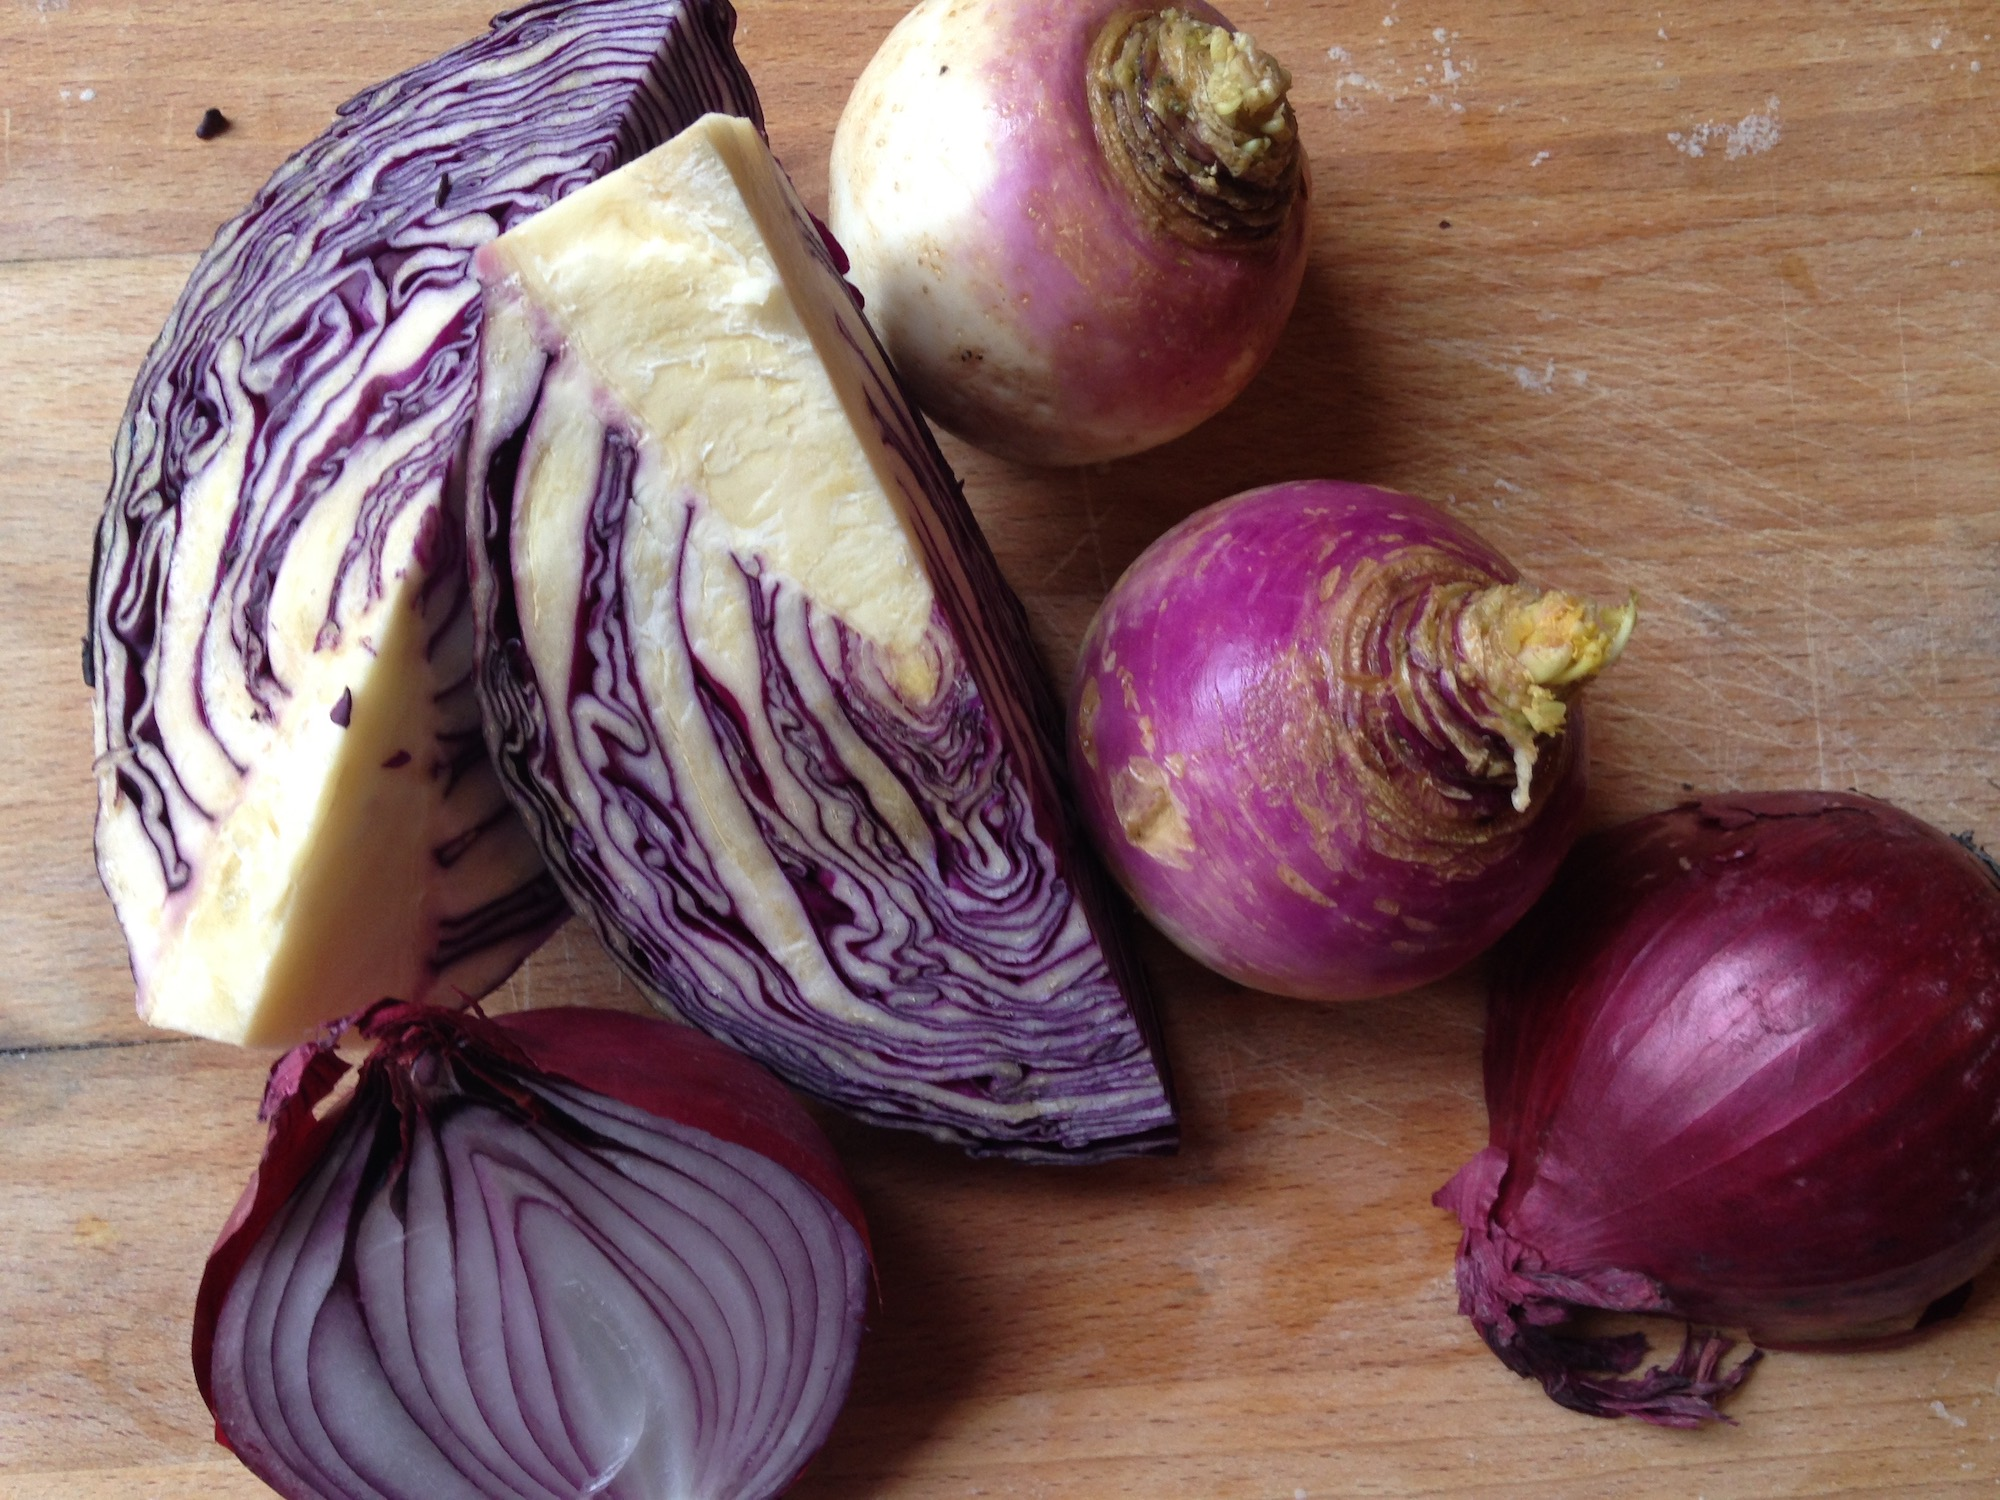 Red Cabbage Salad - Make you winter meal pop with purple